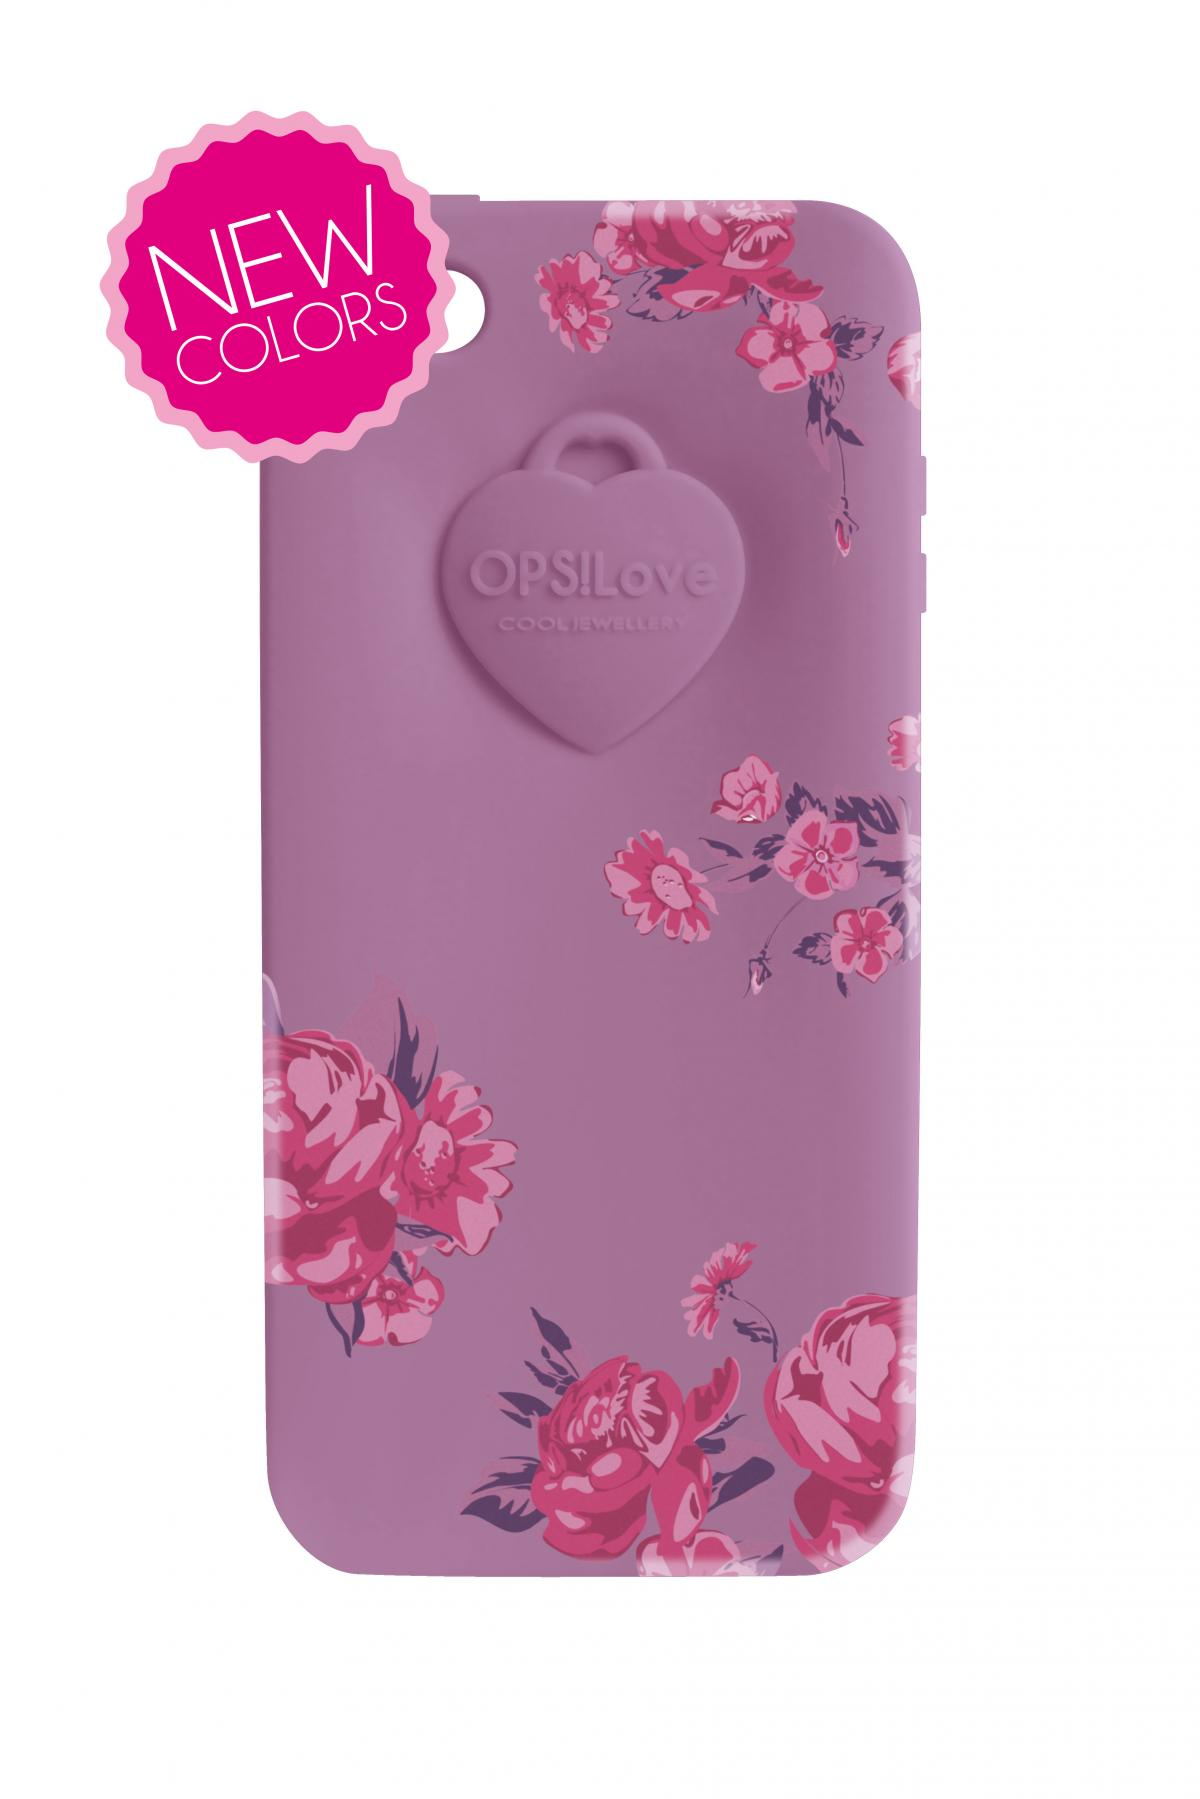 Cover ops-flower-fucsia-Clessidra Jewels